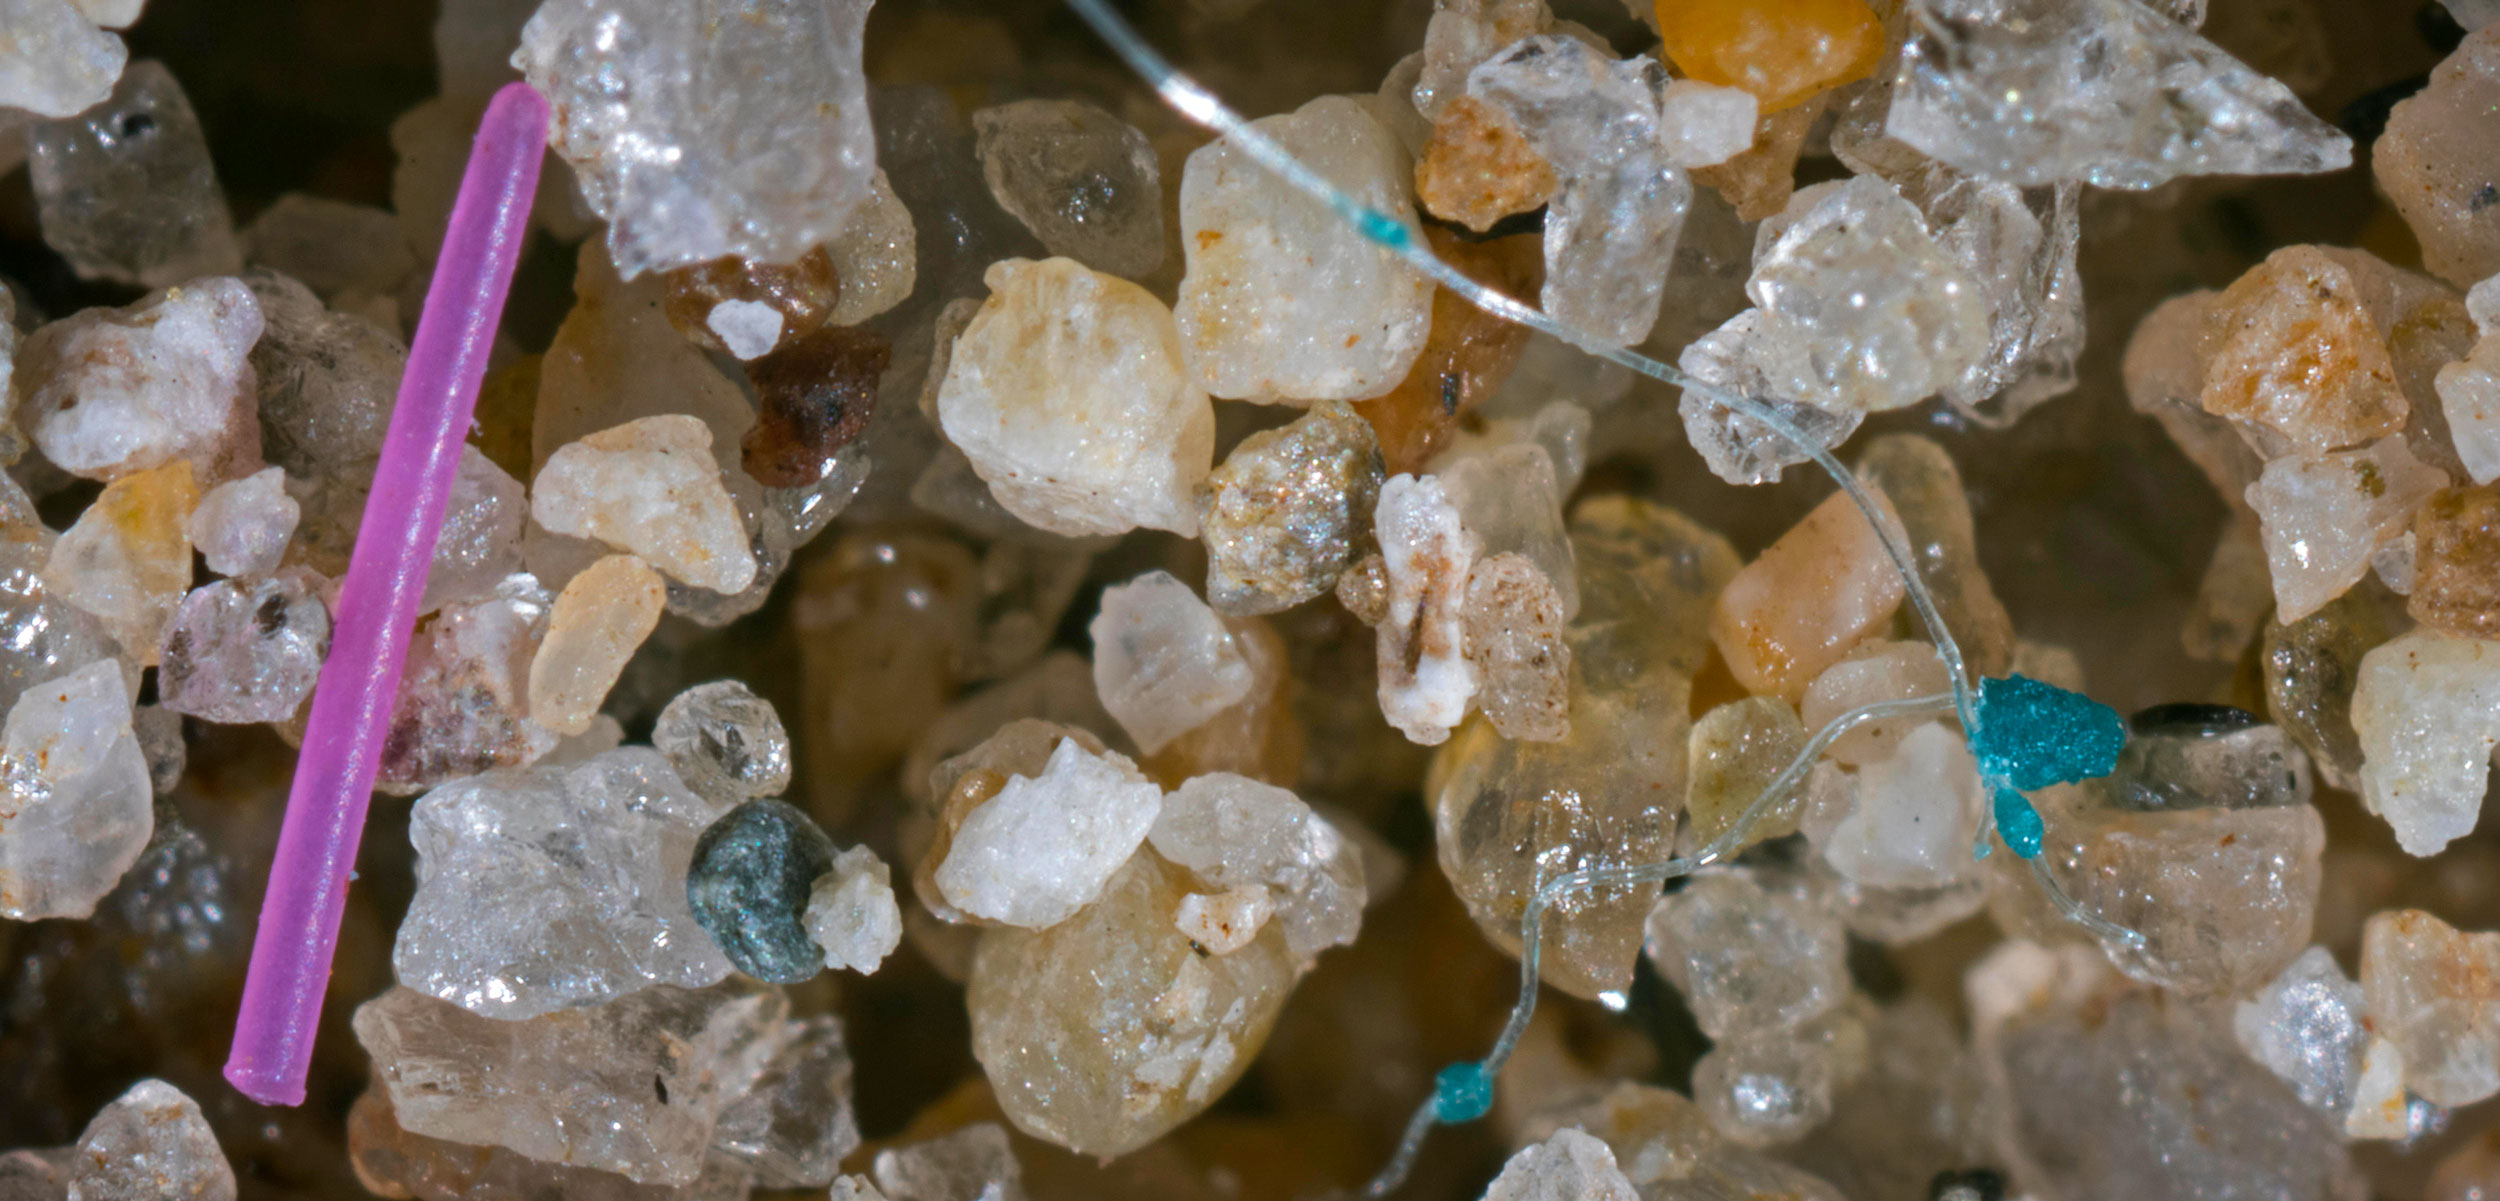 Detail of microplastics mixed with sand from a beach